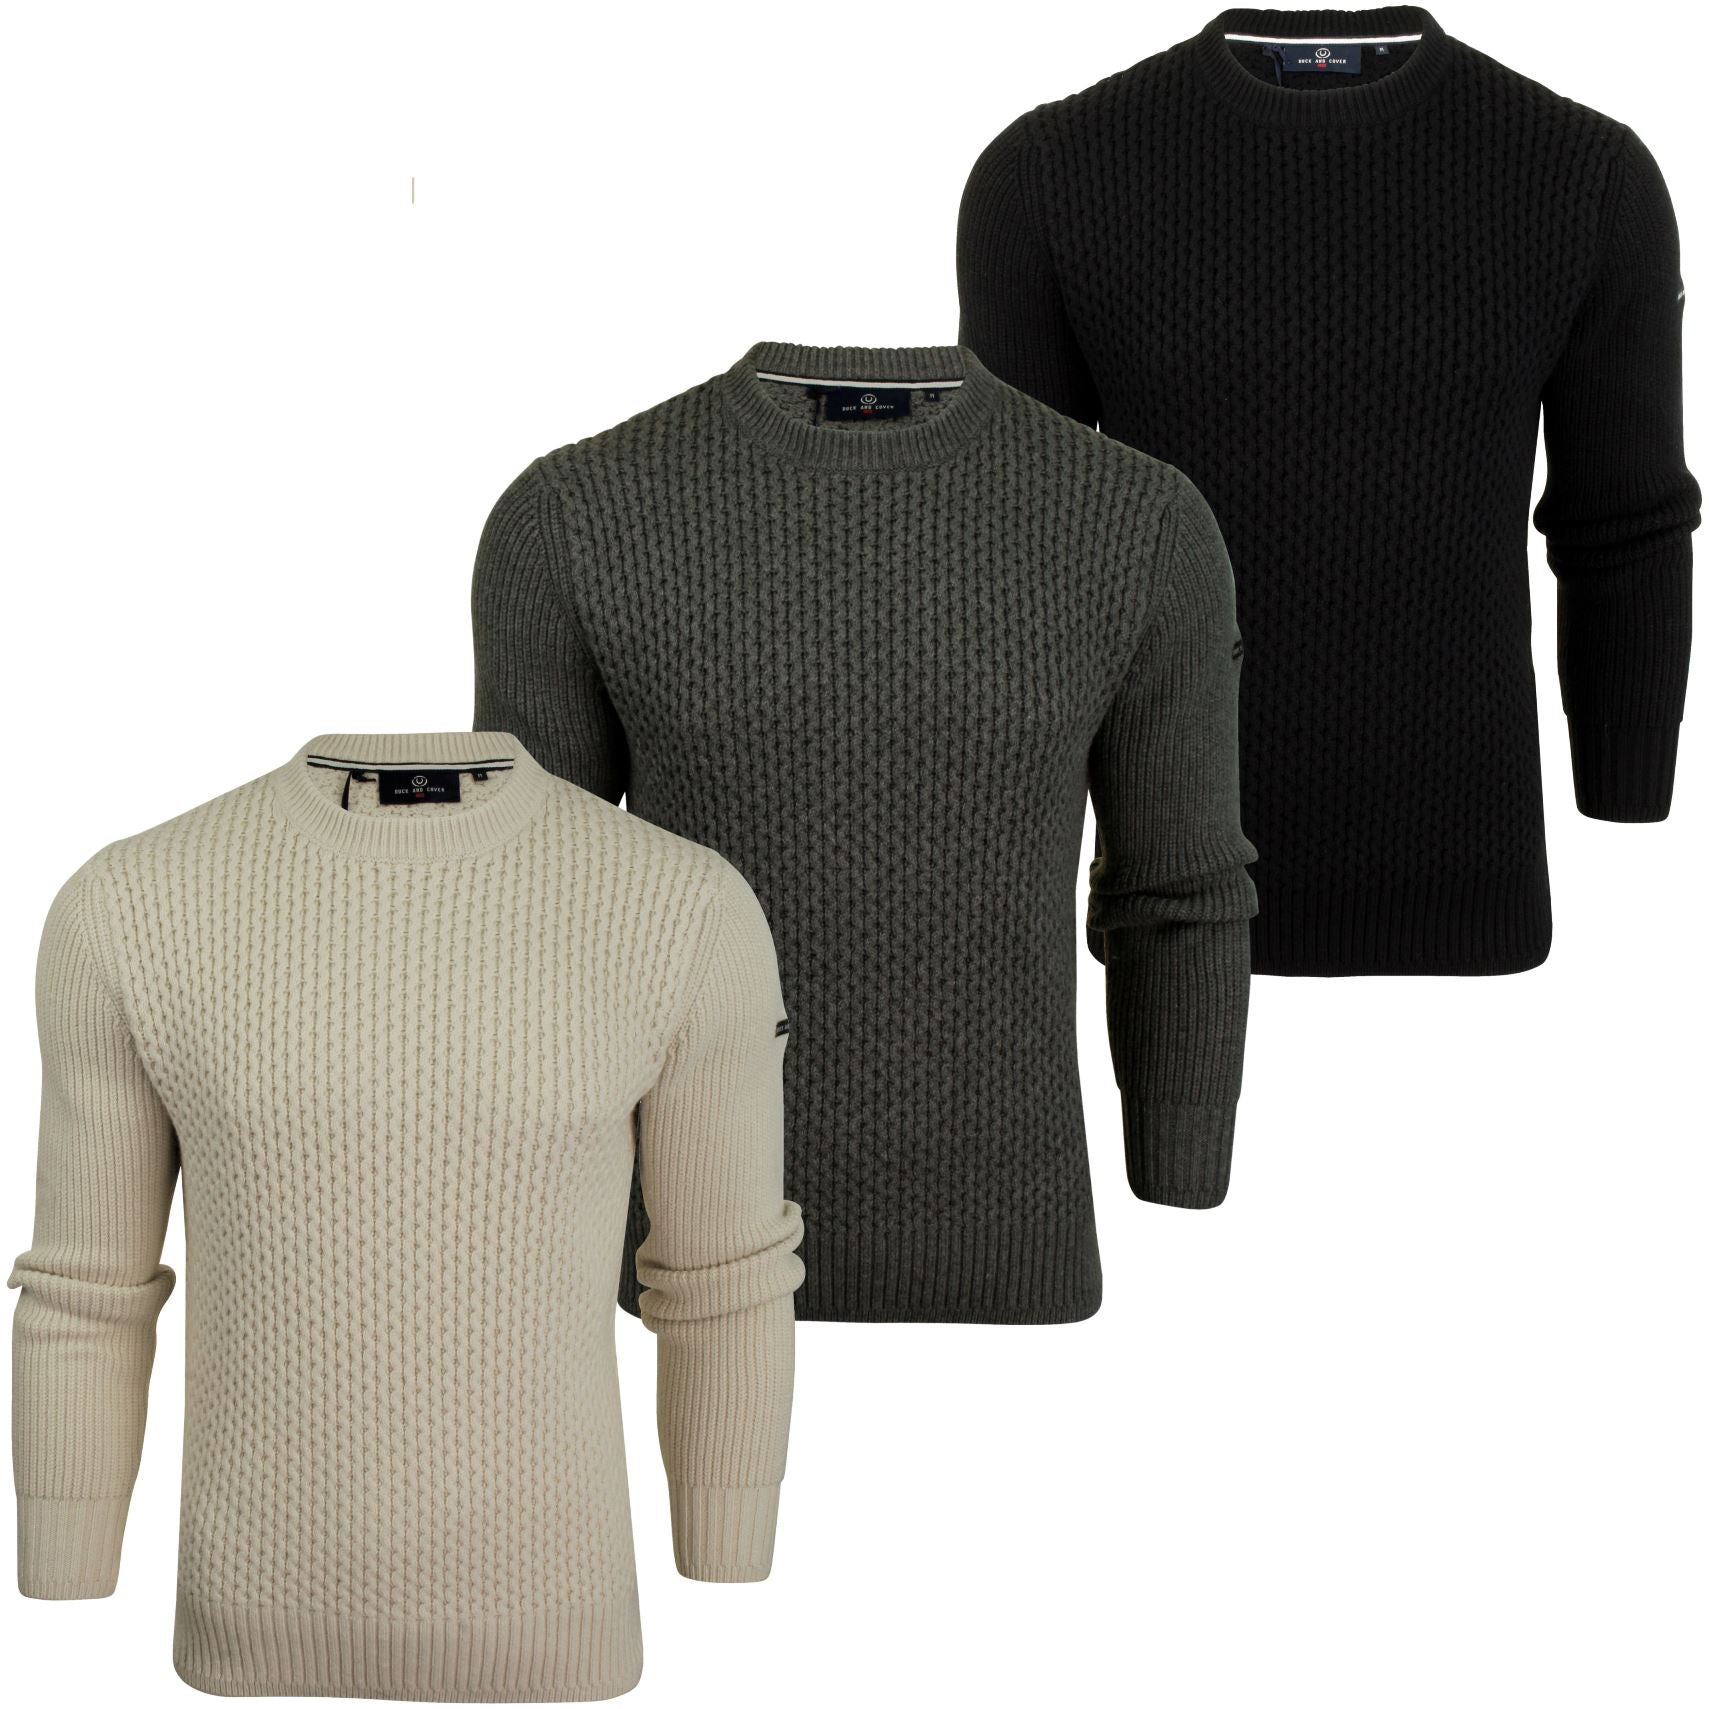 Mens Honeycombe Stitch Jumper by Duck and Cover 'Beam'-Main Image